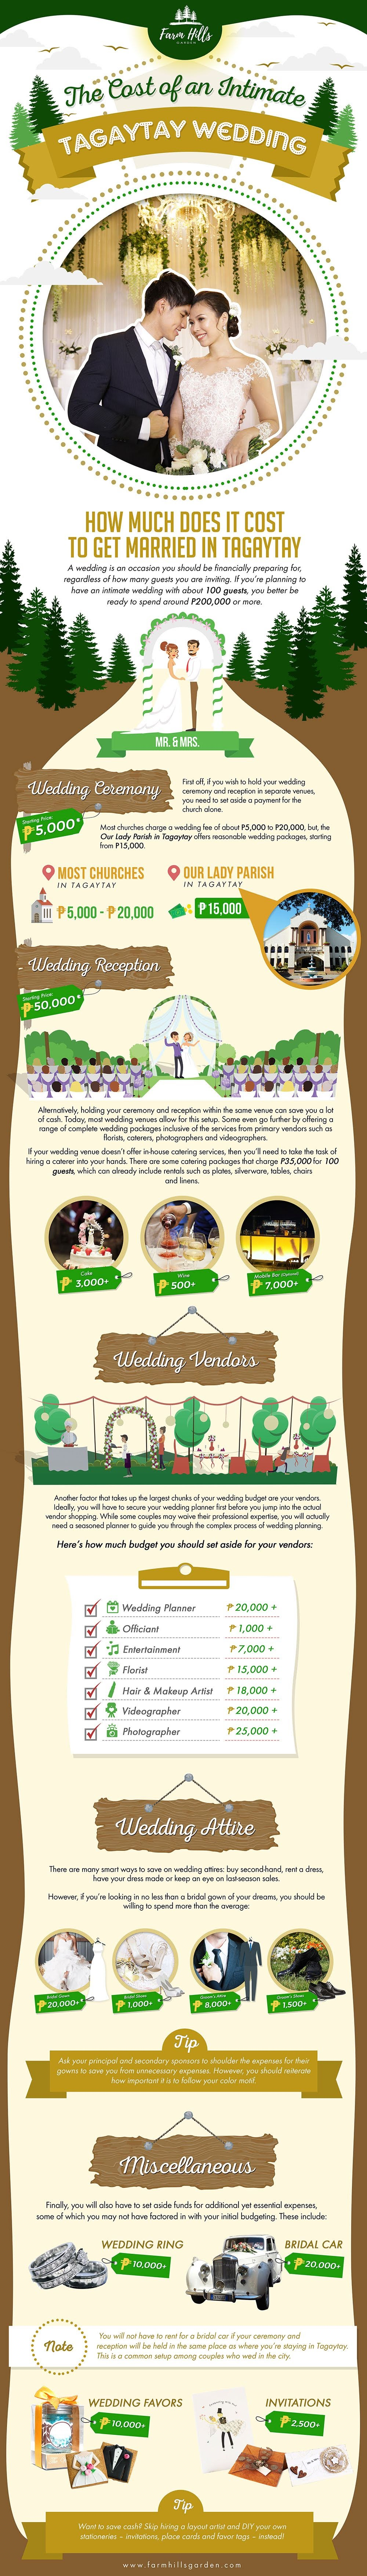 The Cost of an Intimate Tagaytay Wedding #infographic